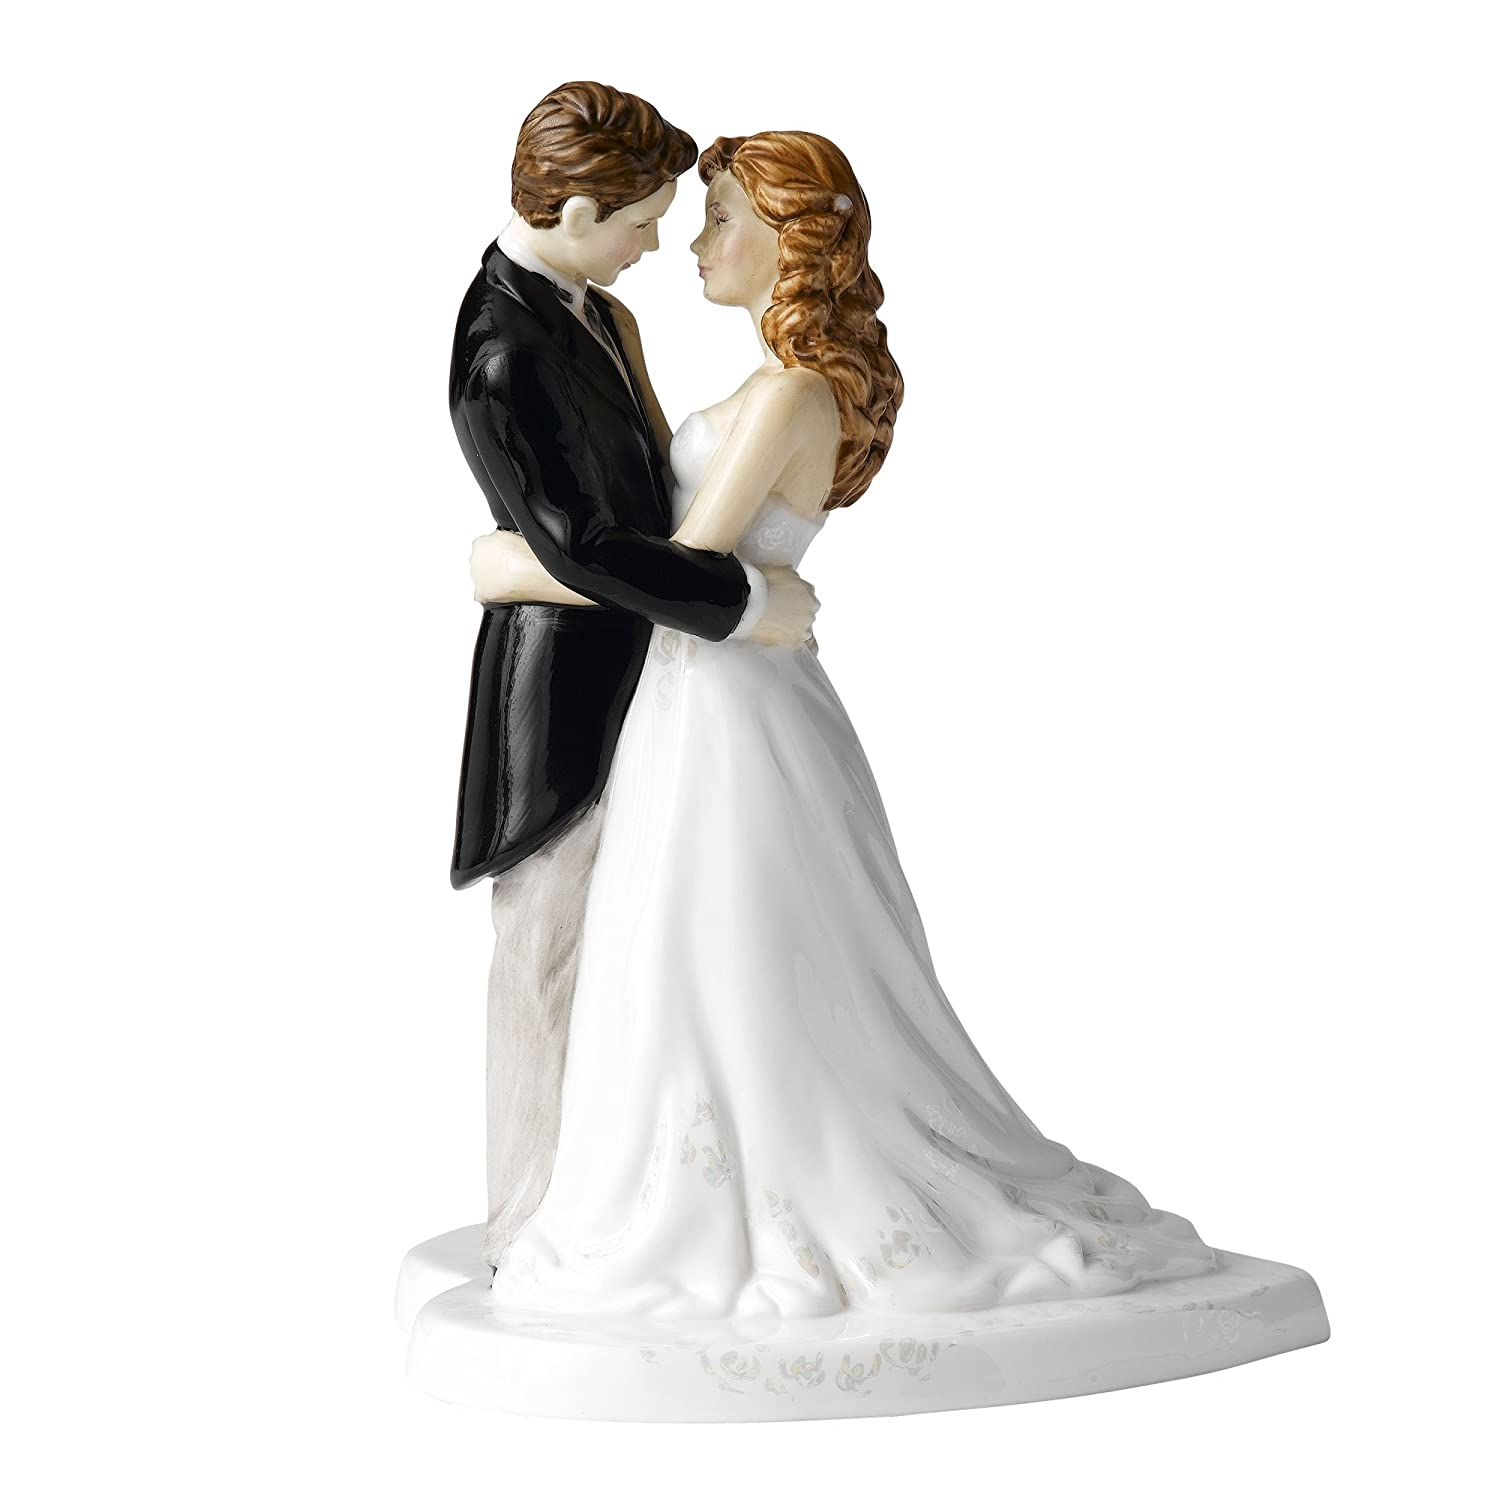 Amazon.com: Royal Doulton Our Wedding Day Cake Topper: Kitchen & Dining